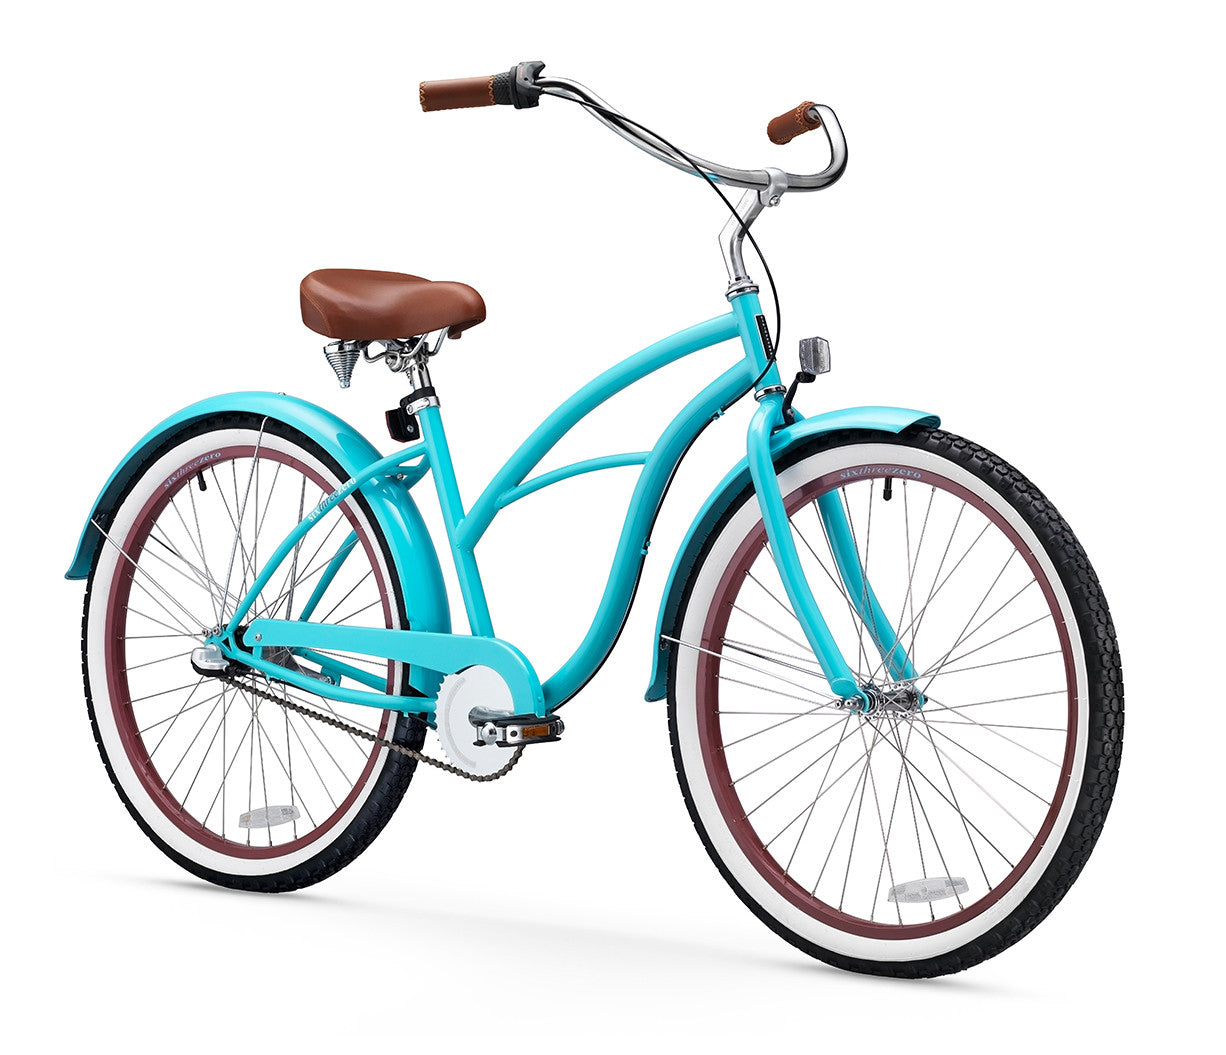 sixthreezero Teal 3 Speed Women's Beach Cruiser Bike